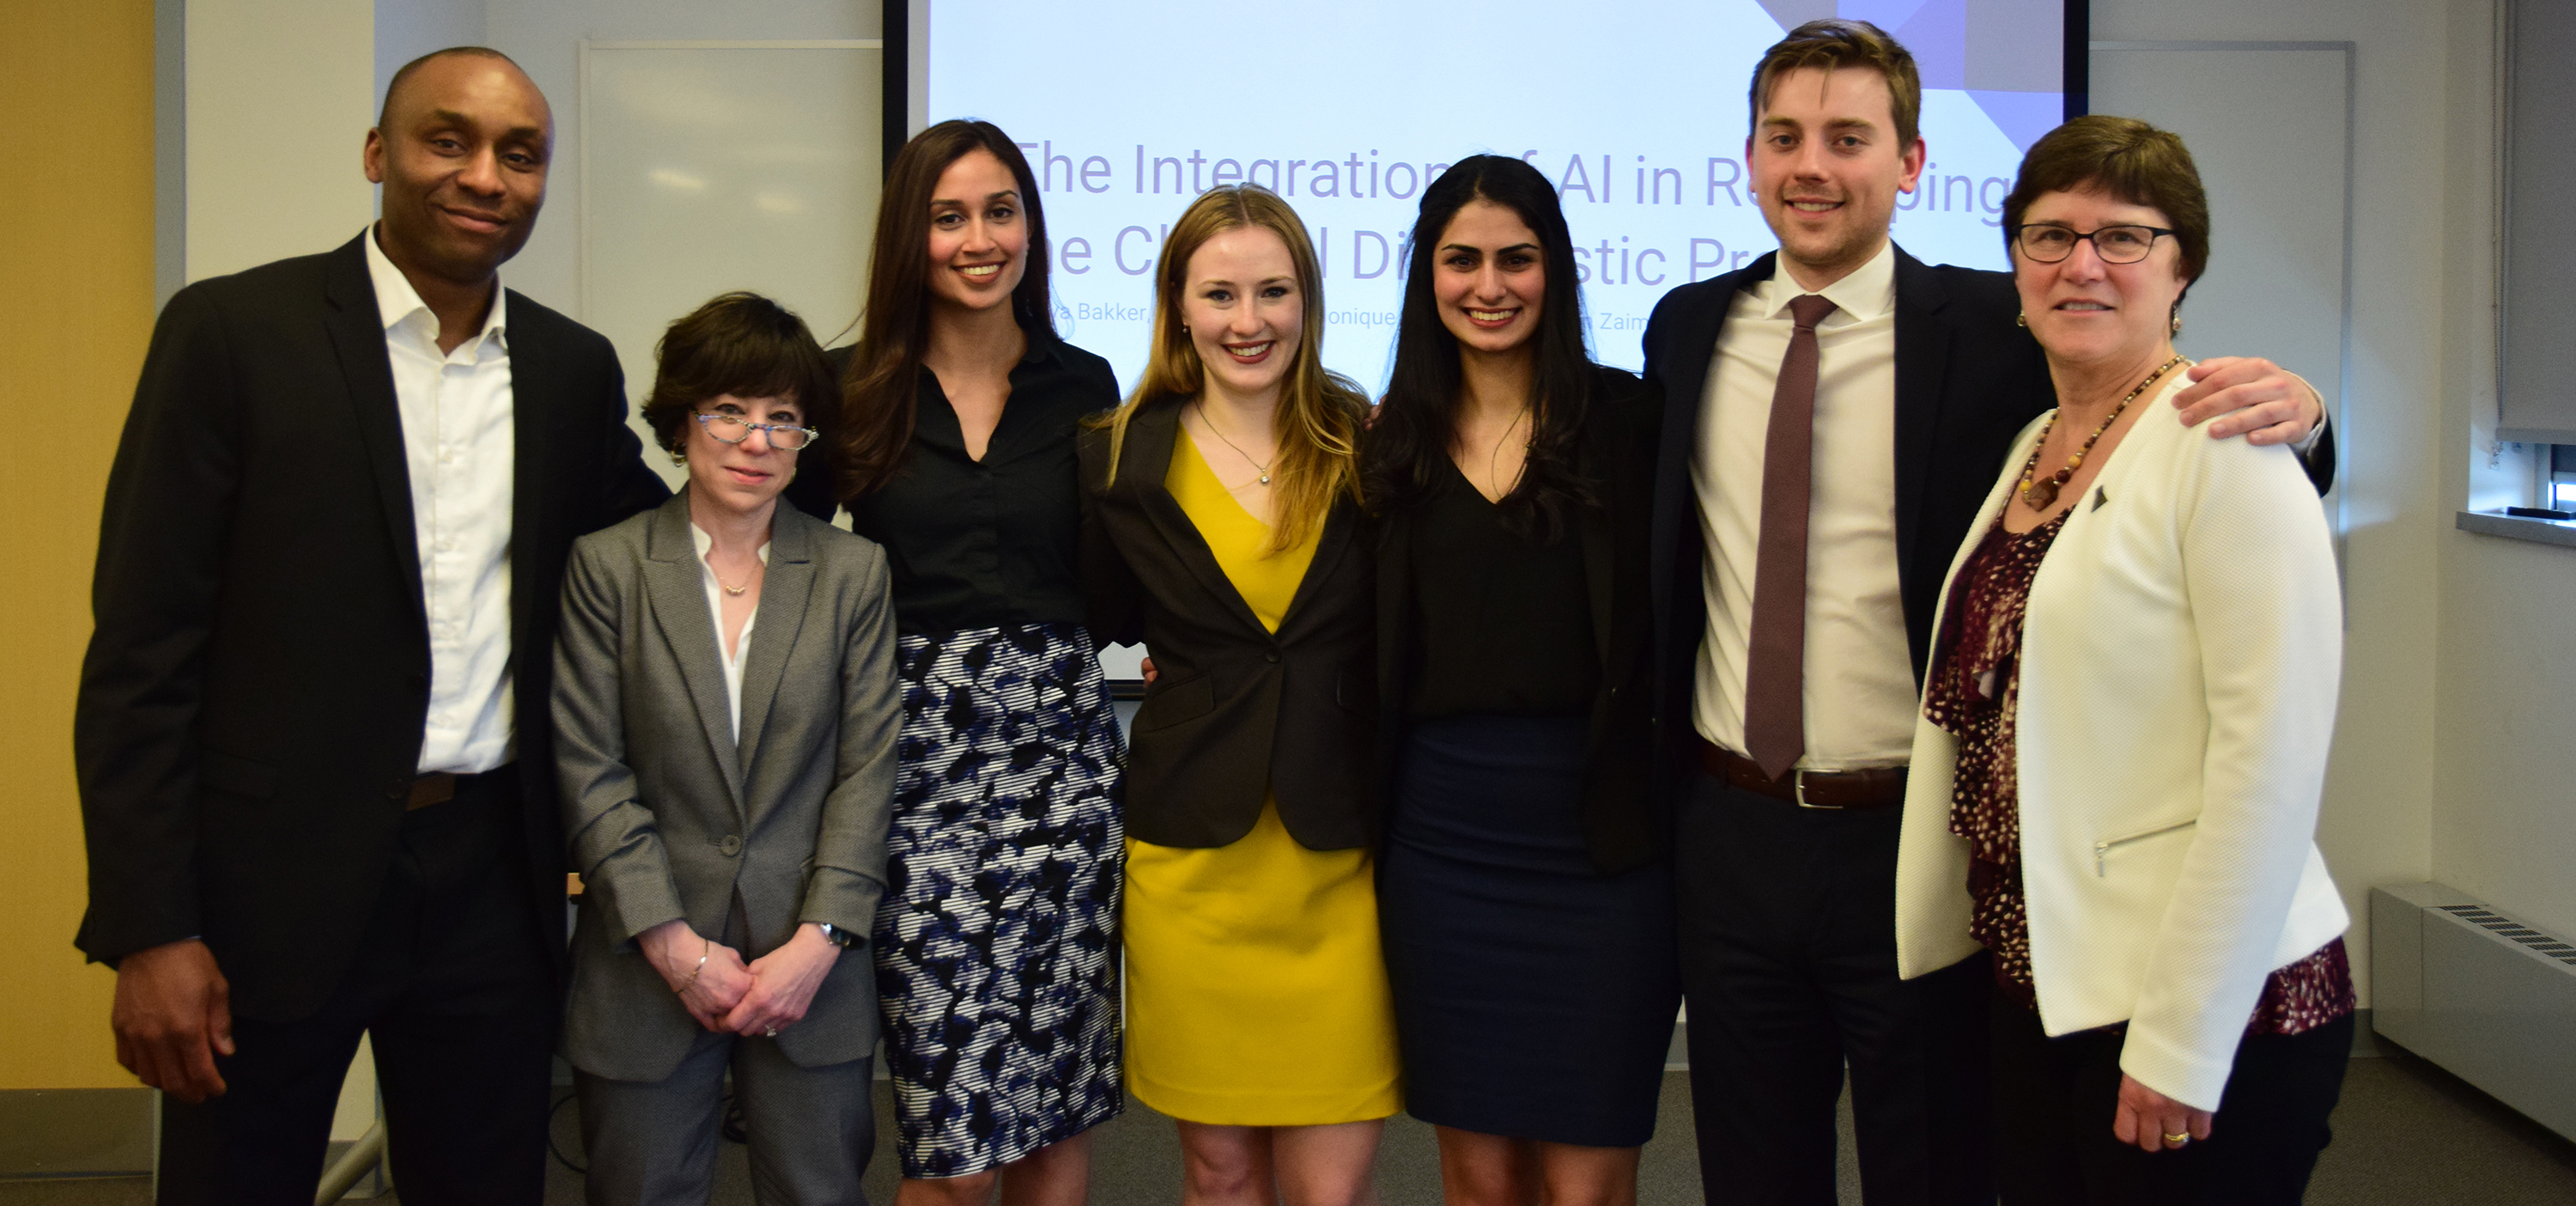 Capstone group photo with supervisors and special guest Dr. Maura Grossman.